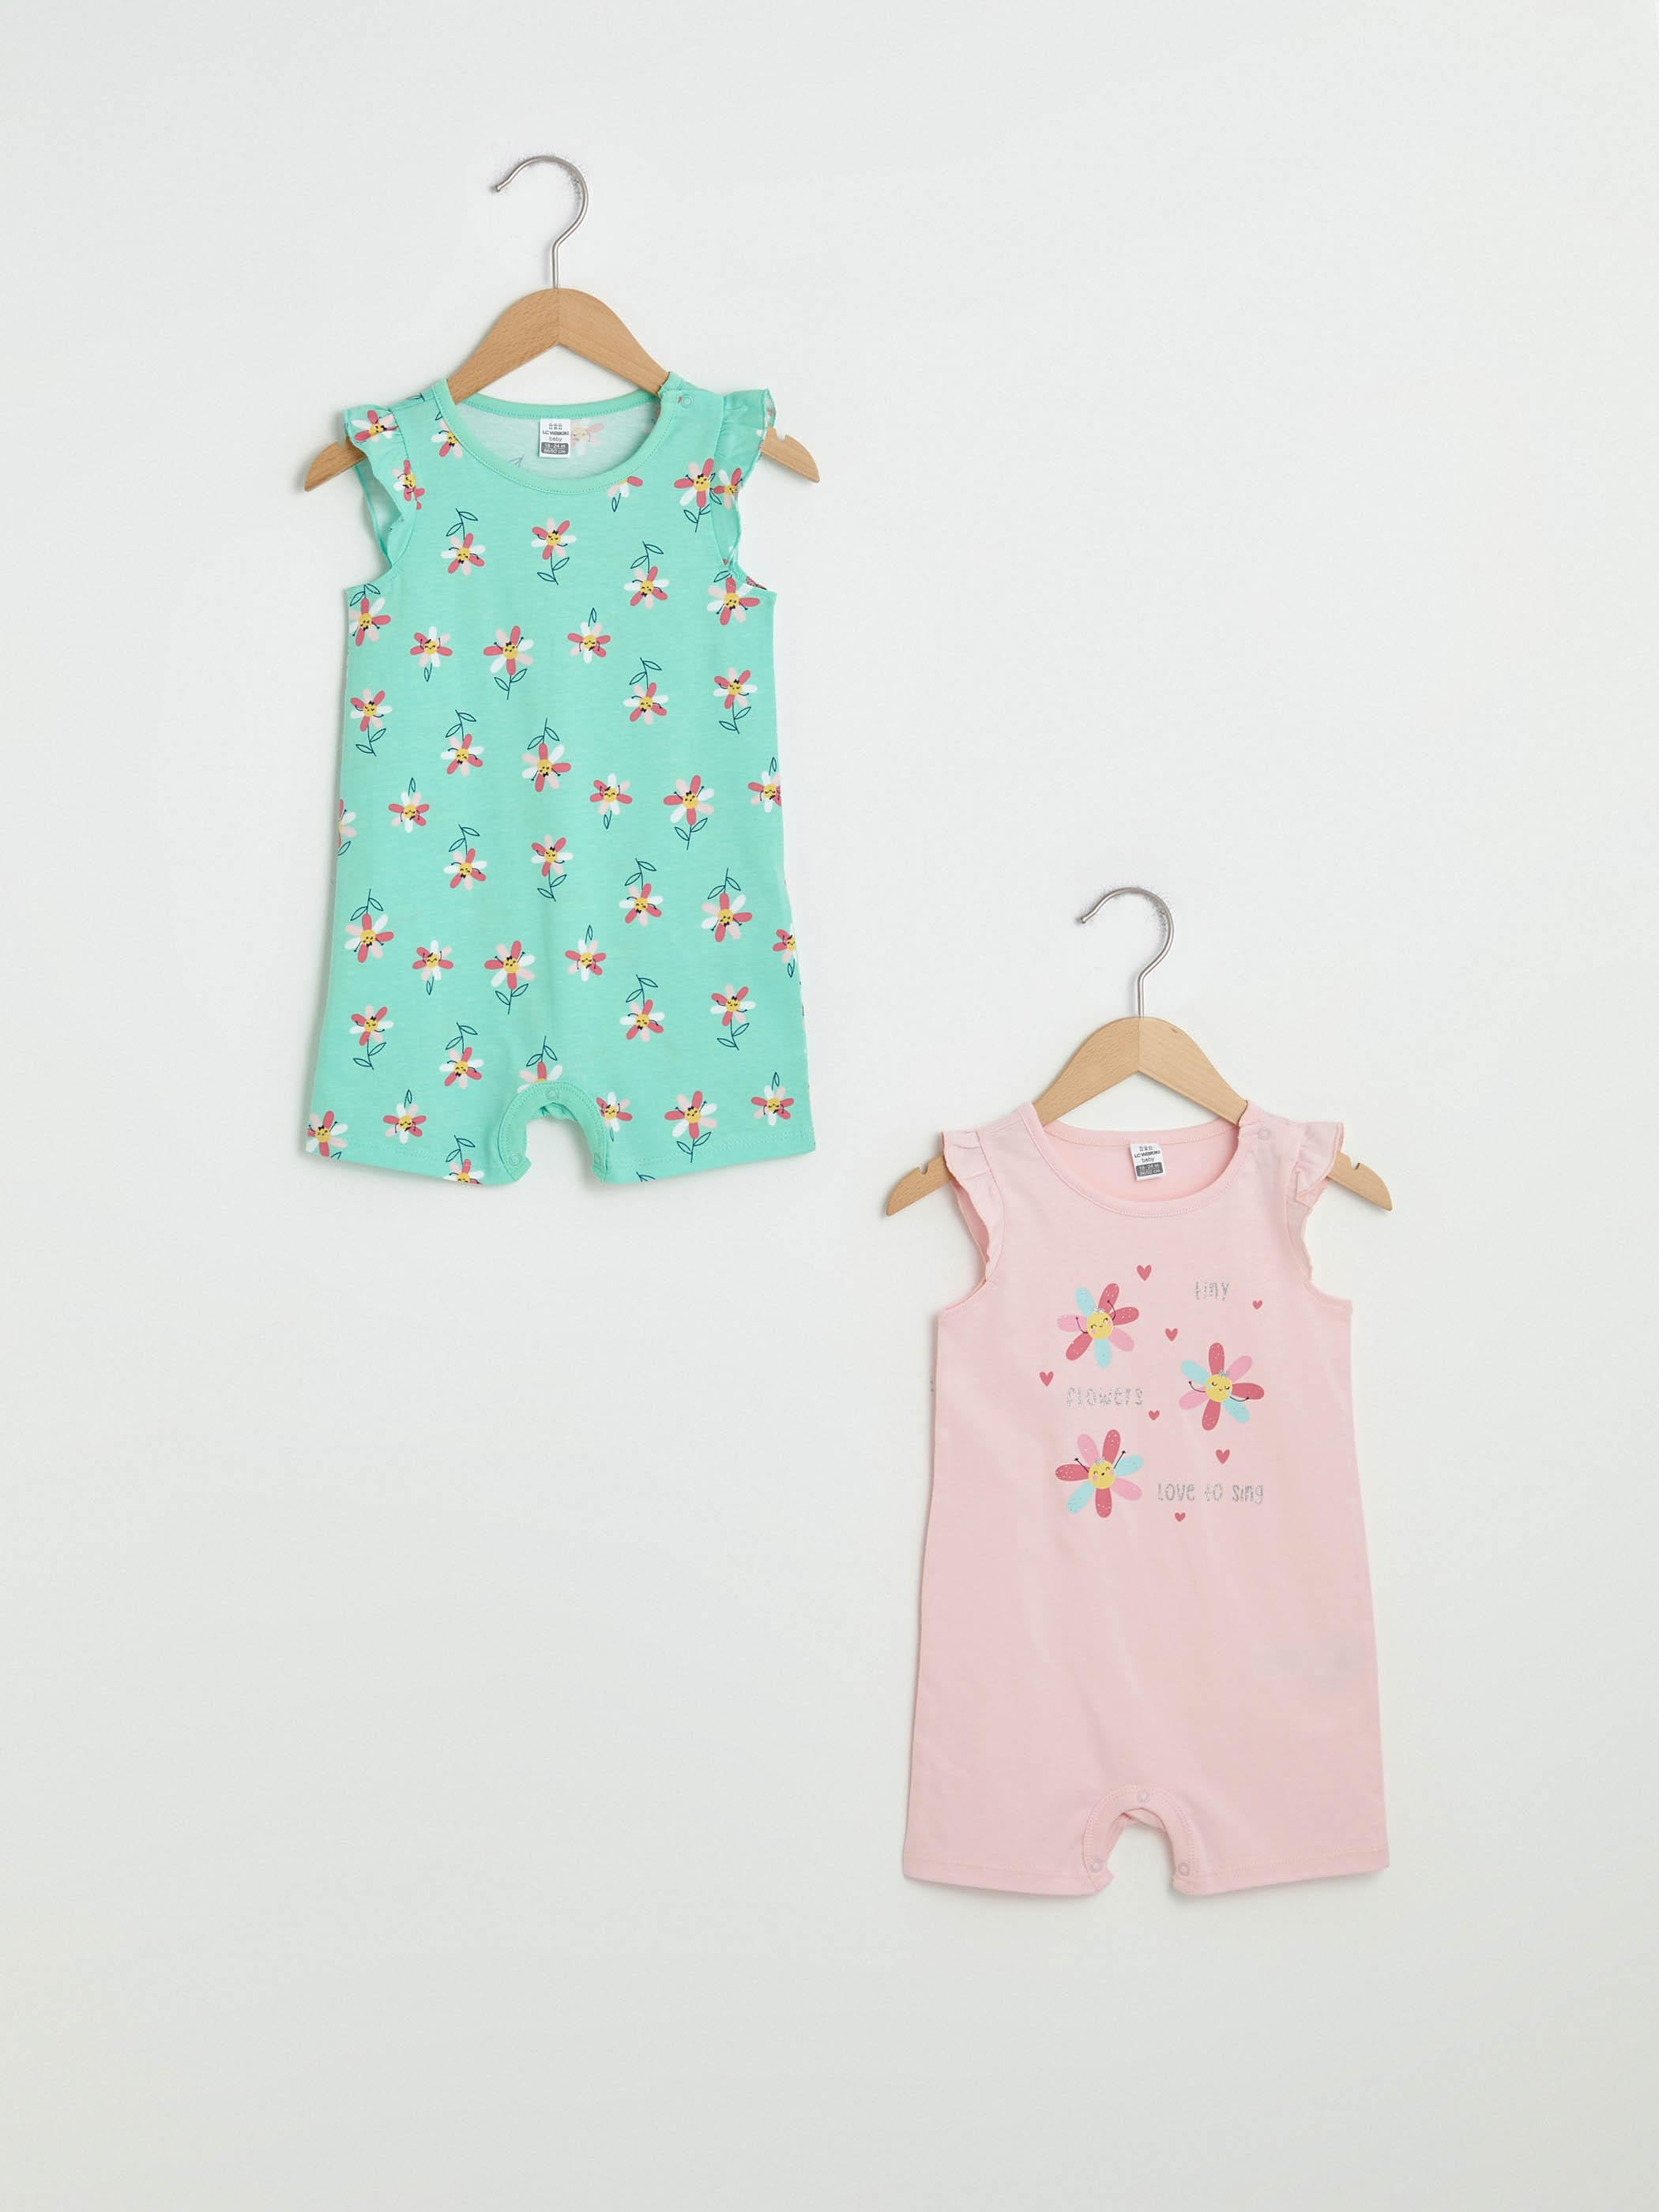 PINK - Bicycle Yala Sleeveless Printed Baby Girl Jumpsuit 2 Pieces - S13166Z1